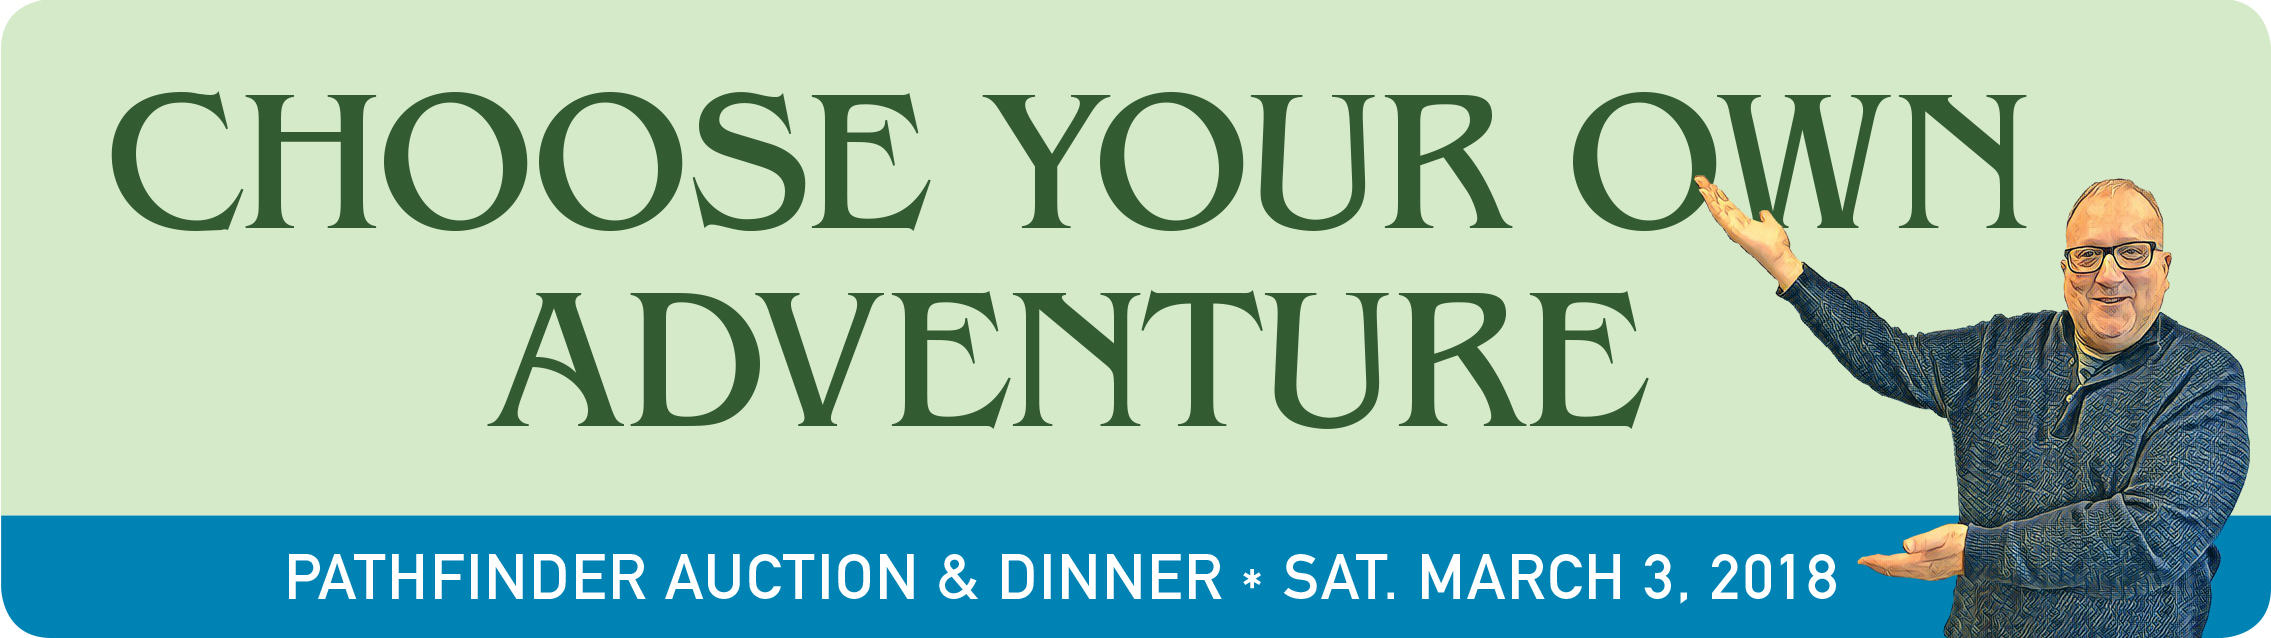 Banner of David and Choose Your Own Adventure Title Auction Dinner Sat. March 3, 2018